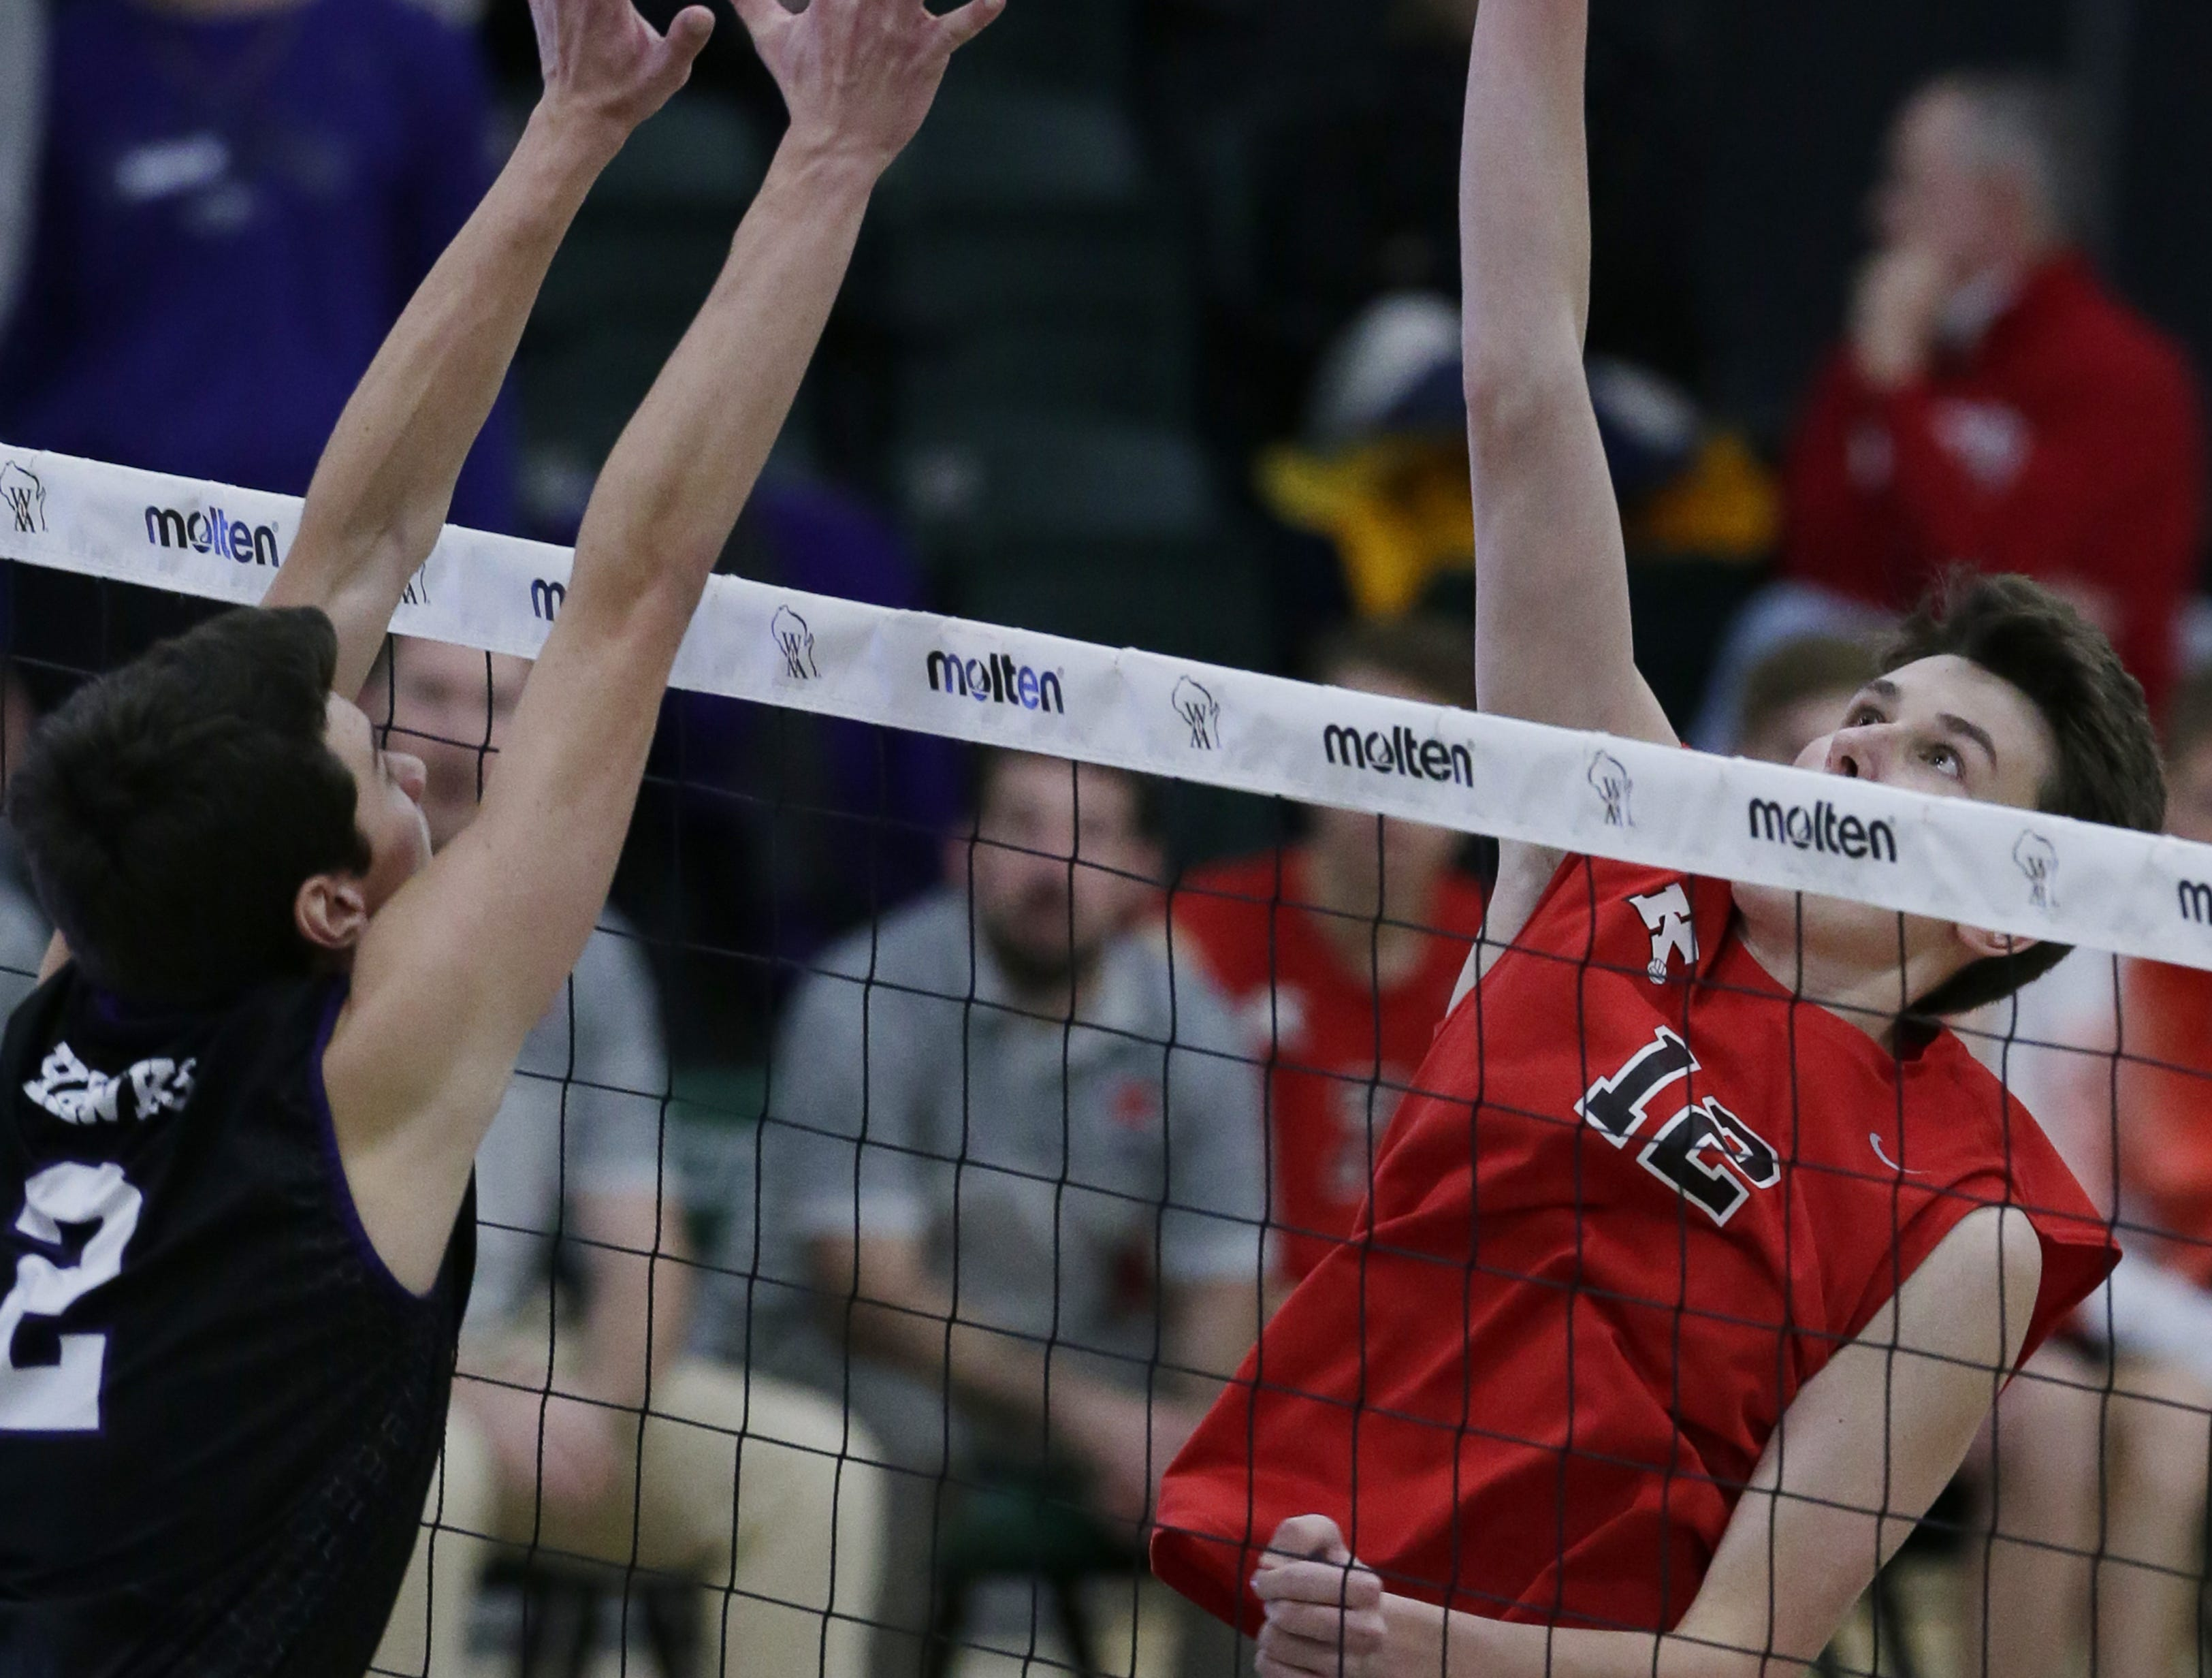 Kimberly's Parker Hietpas goes up for a hit during their game.  Kimberly Papermakers played Kenosha Indian Trail Hawks in Division 1 WIAA boys volleyball playoff semi-final, Saturday, November 10, 2018 at Wisconsin Lutheran College in Milwaukee, Wis. Joe Sienkiewicz/USA Today NETWORK-Wisconsin